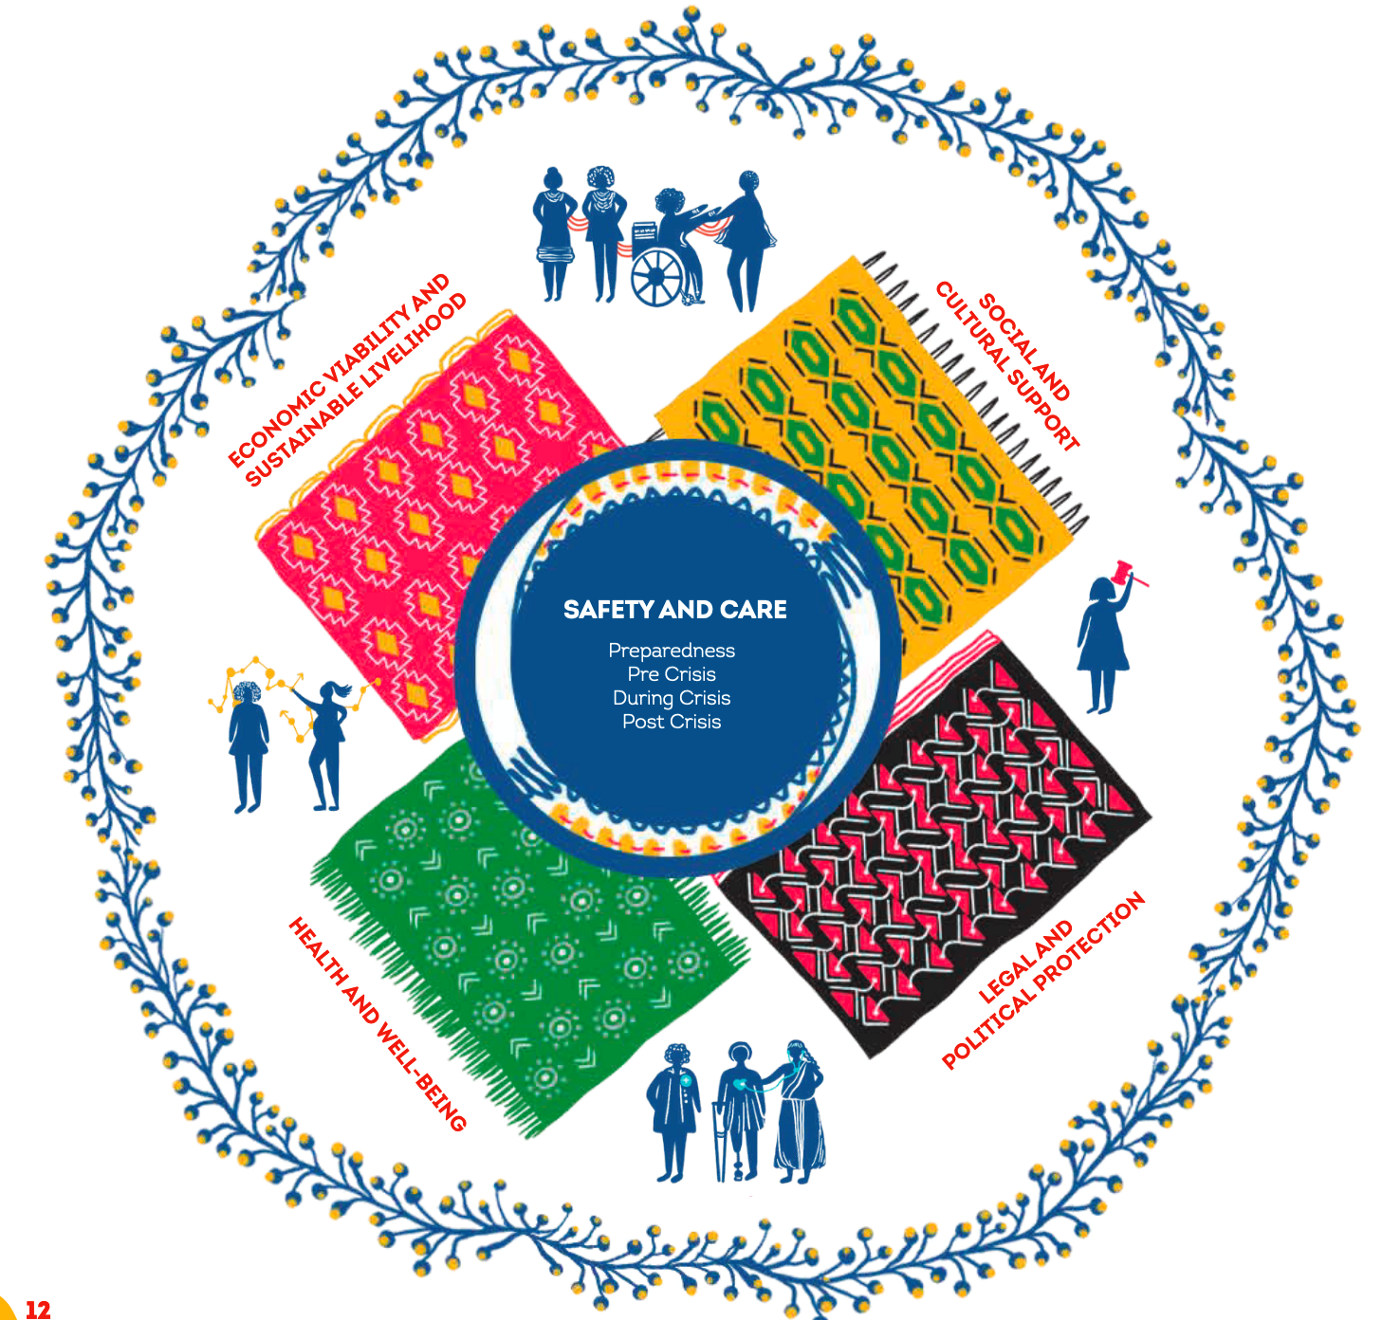 A circle showing four colourful, patterned patches and human figures. The central circle's headline says 'Safety and Care'.